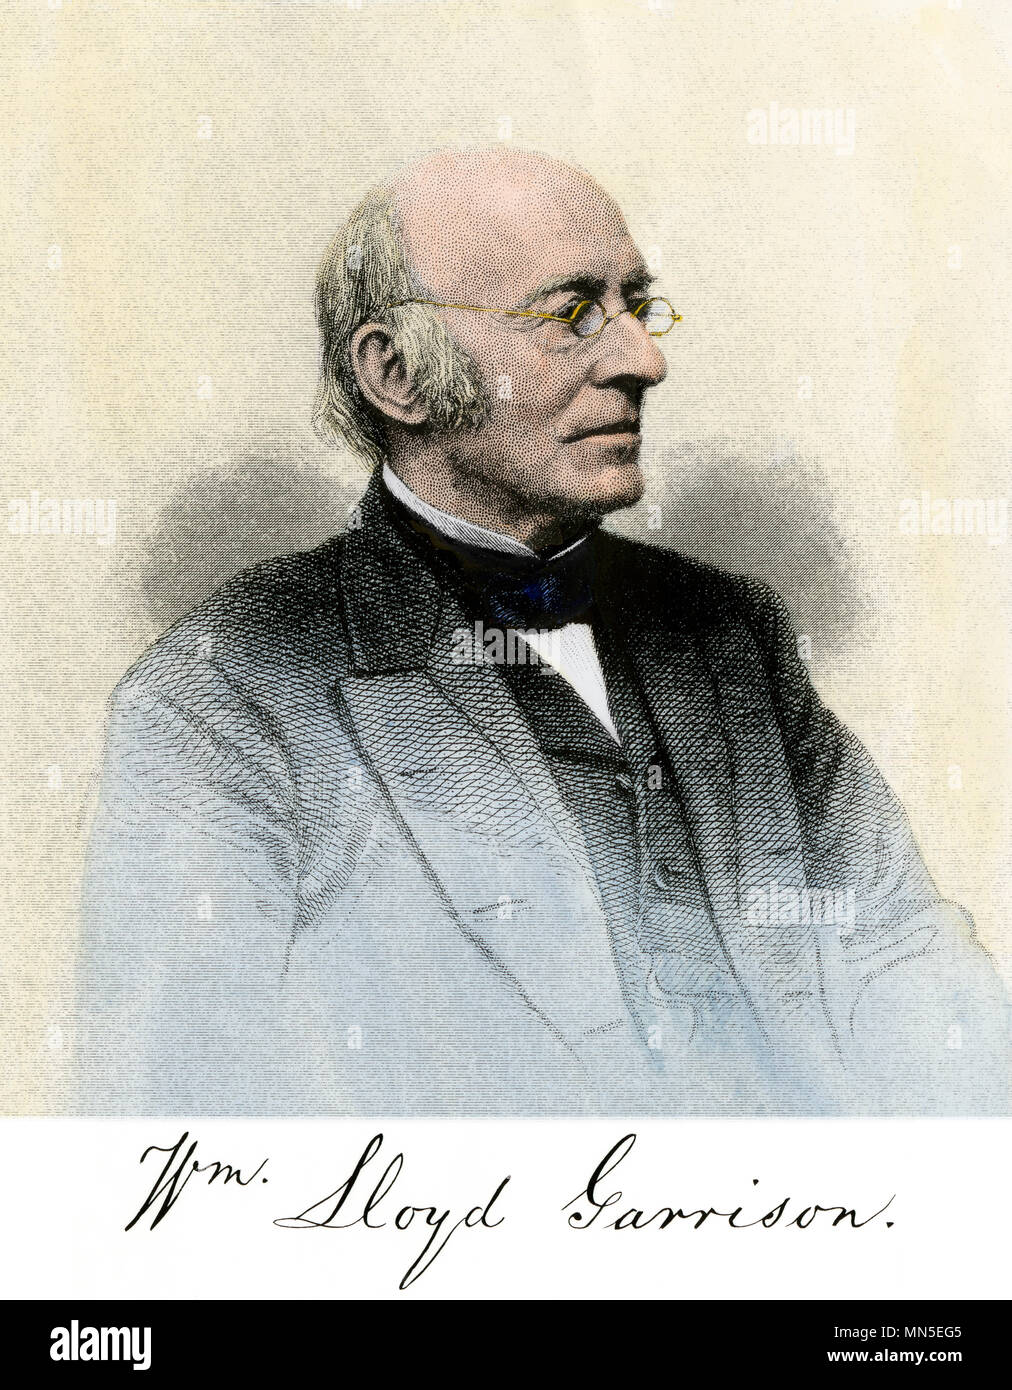 William Lloyd Garrison, portrait with autograph. Hand-colored engraving - Stock Image